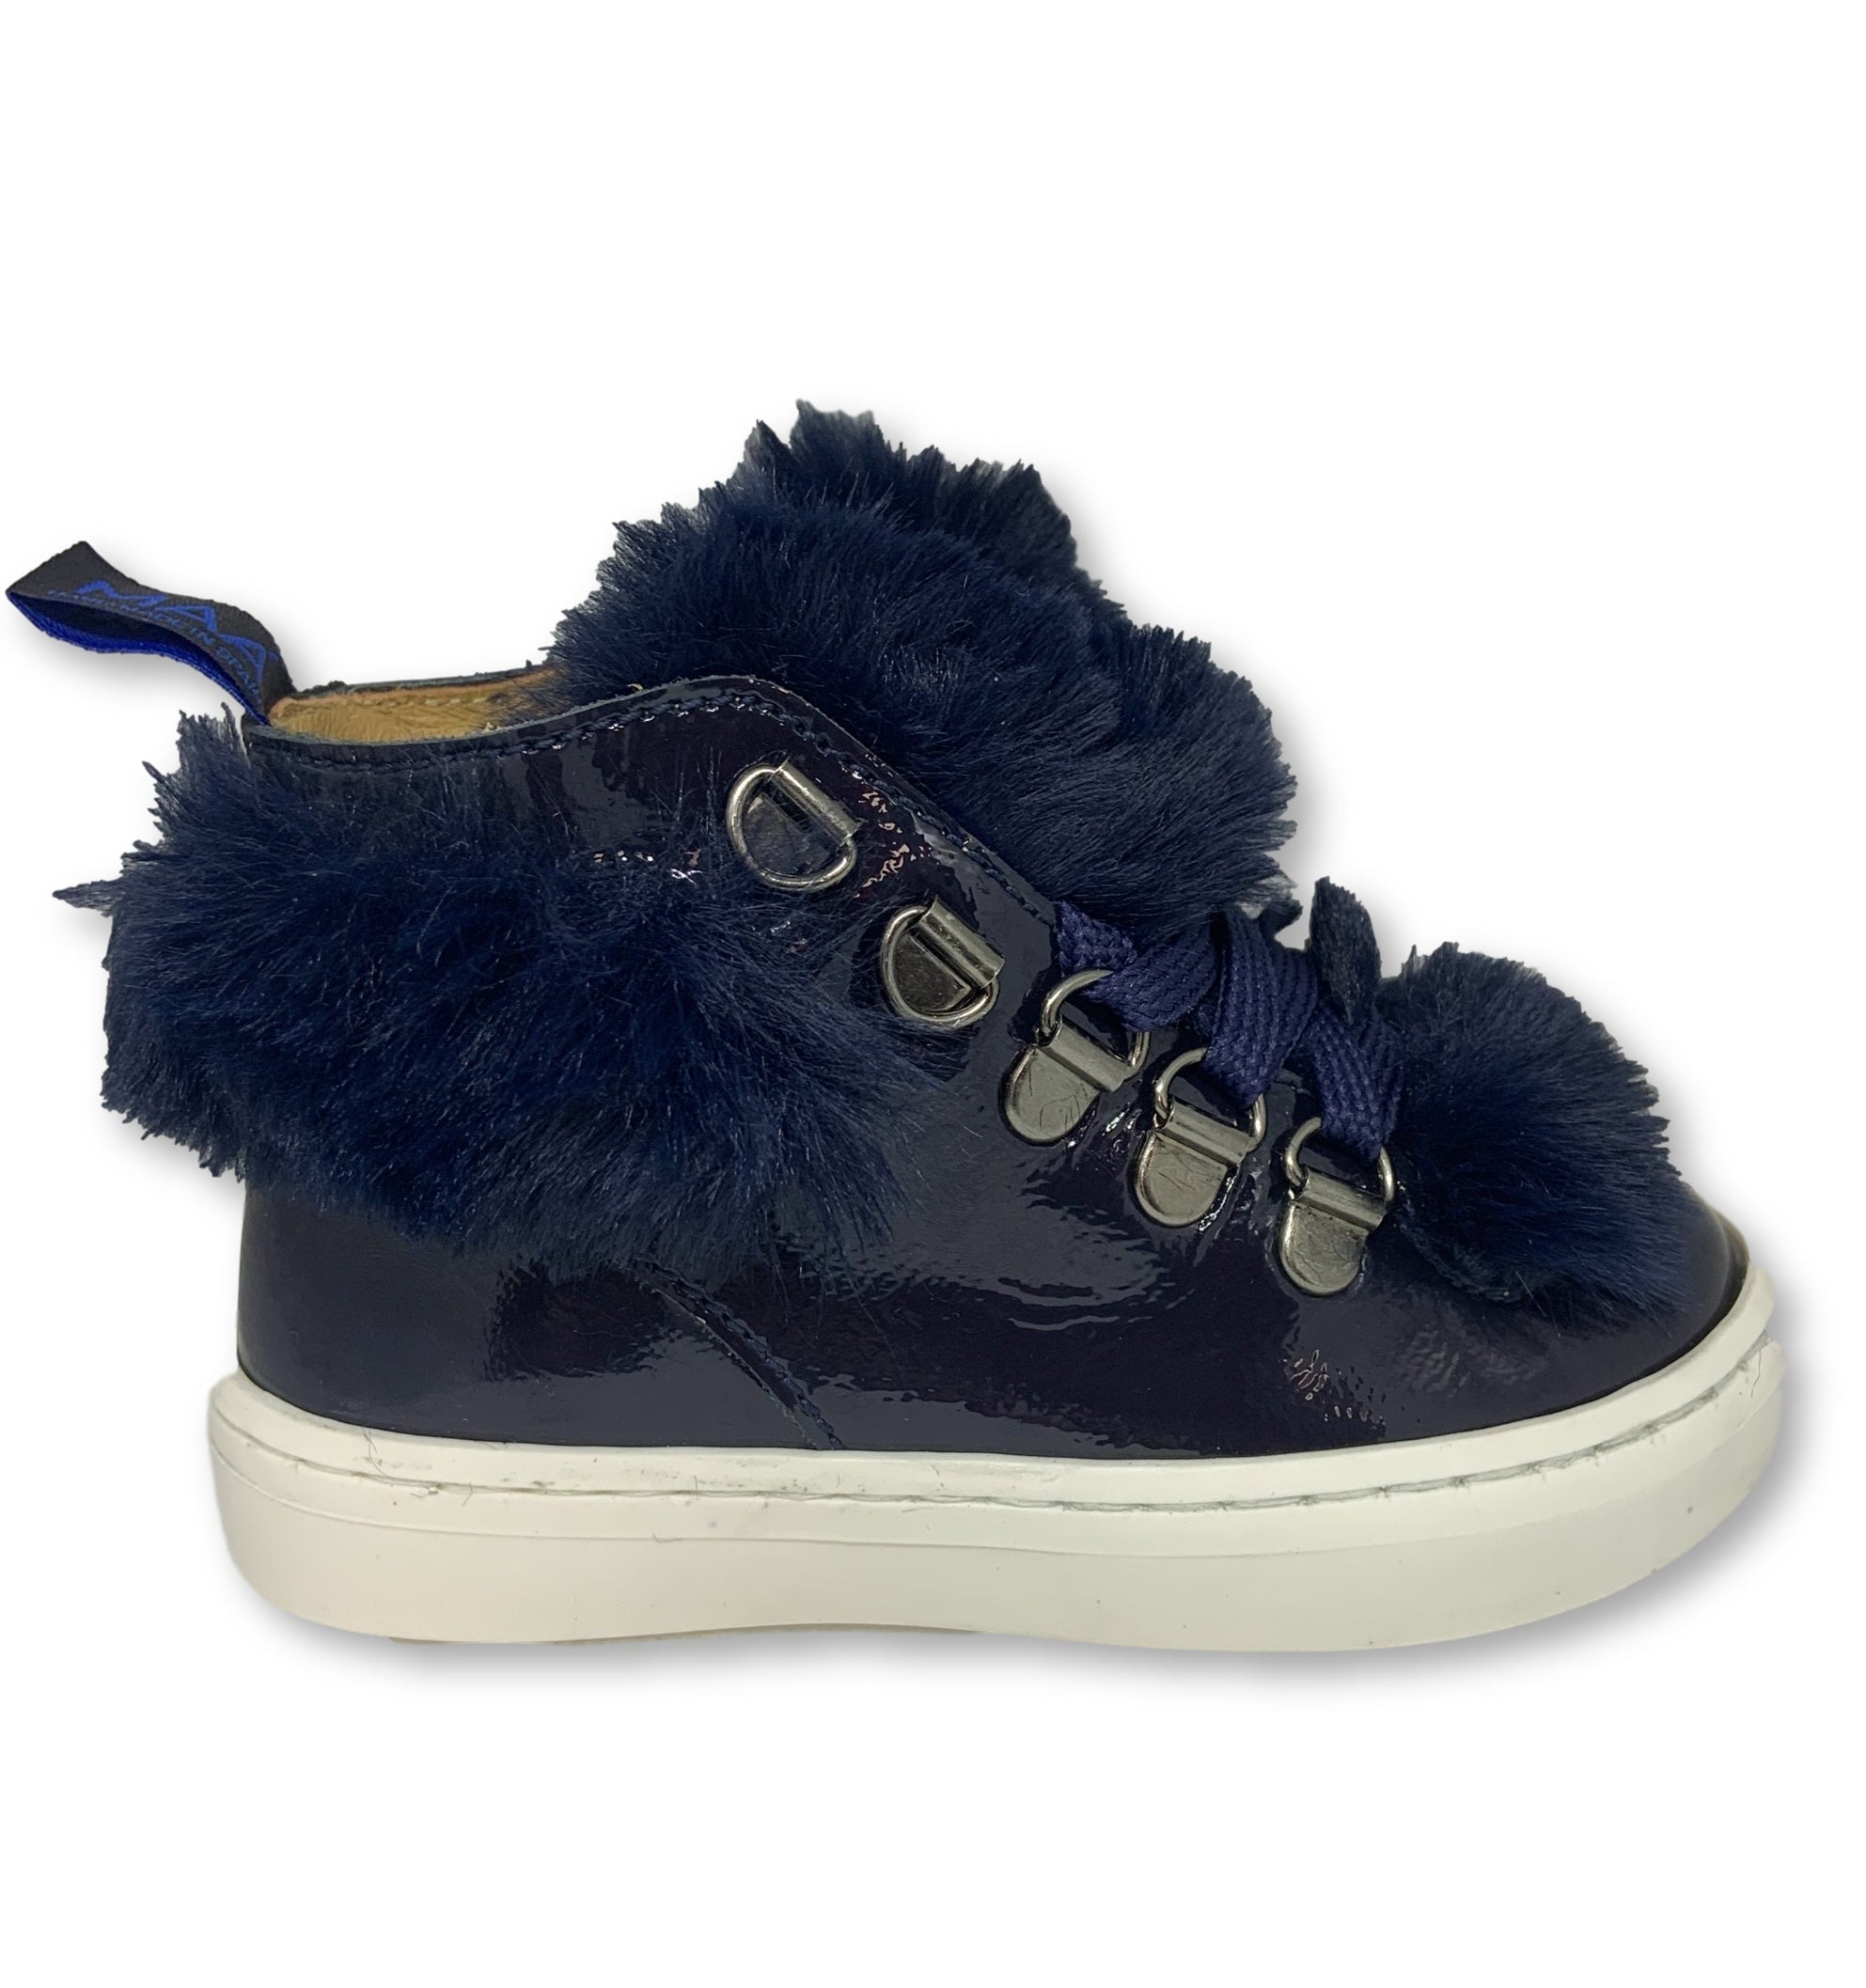 MAA Navy Patent Fur High Top Sneaker-Tassel Children Shoes